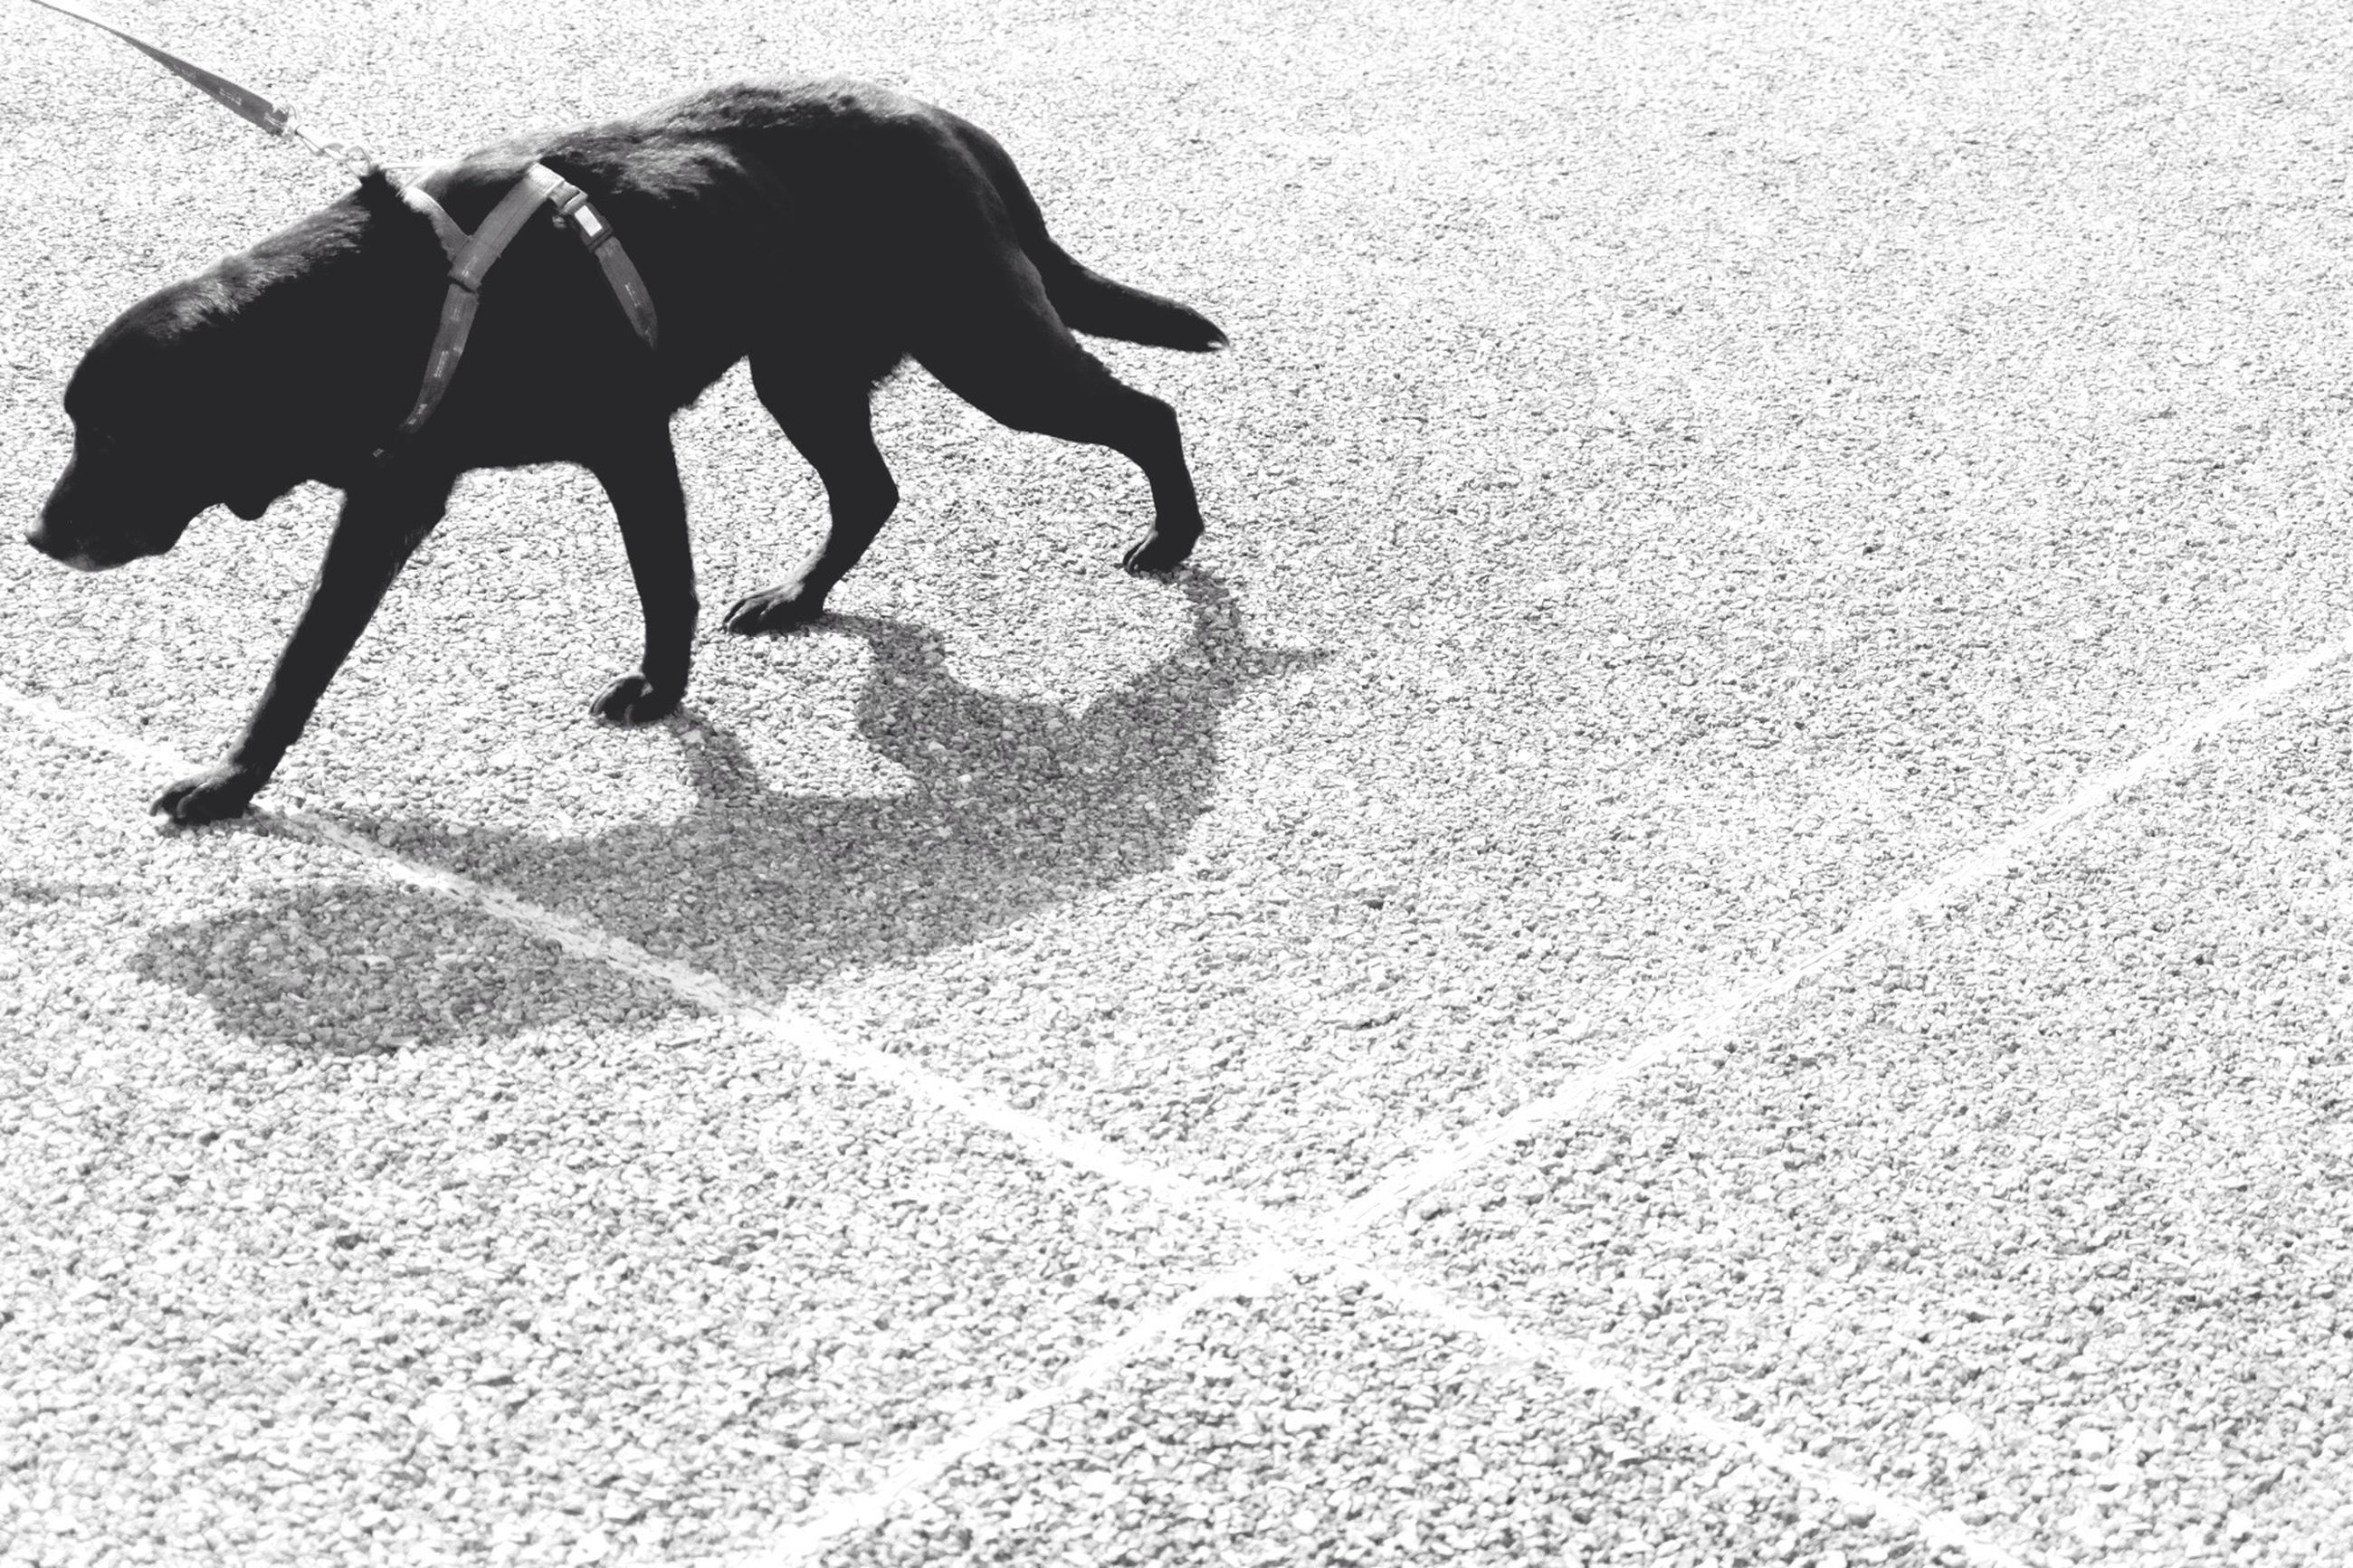 animal themes, one animal, domestic animals, pets, mammal, dog, high angle view, shadow, street, sunlight, walking, day, sidewalk, outdoors, footpath, flooring, tiled floor, no people, black color, pavement